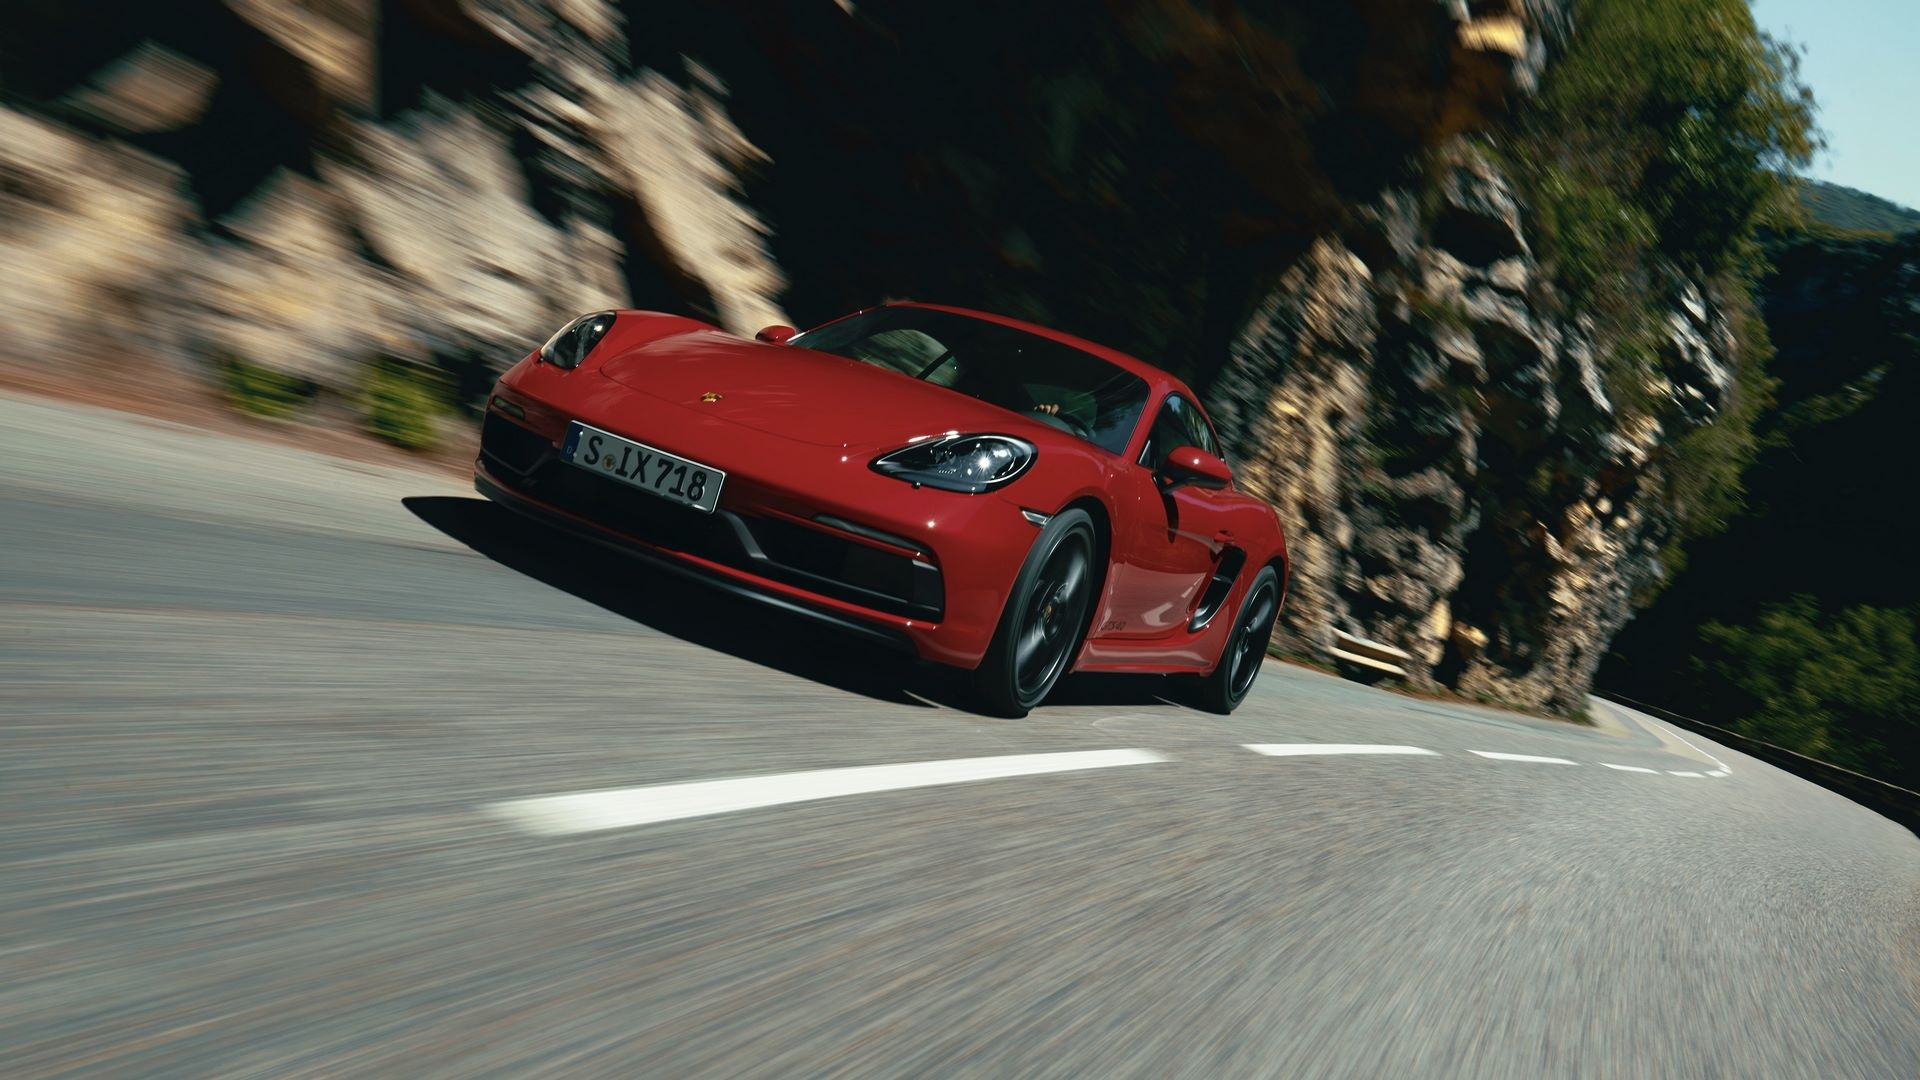 Porsche-718-Boxster-GTS-4.0-and-718-Cayman-GTS-4.0-1